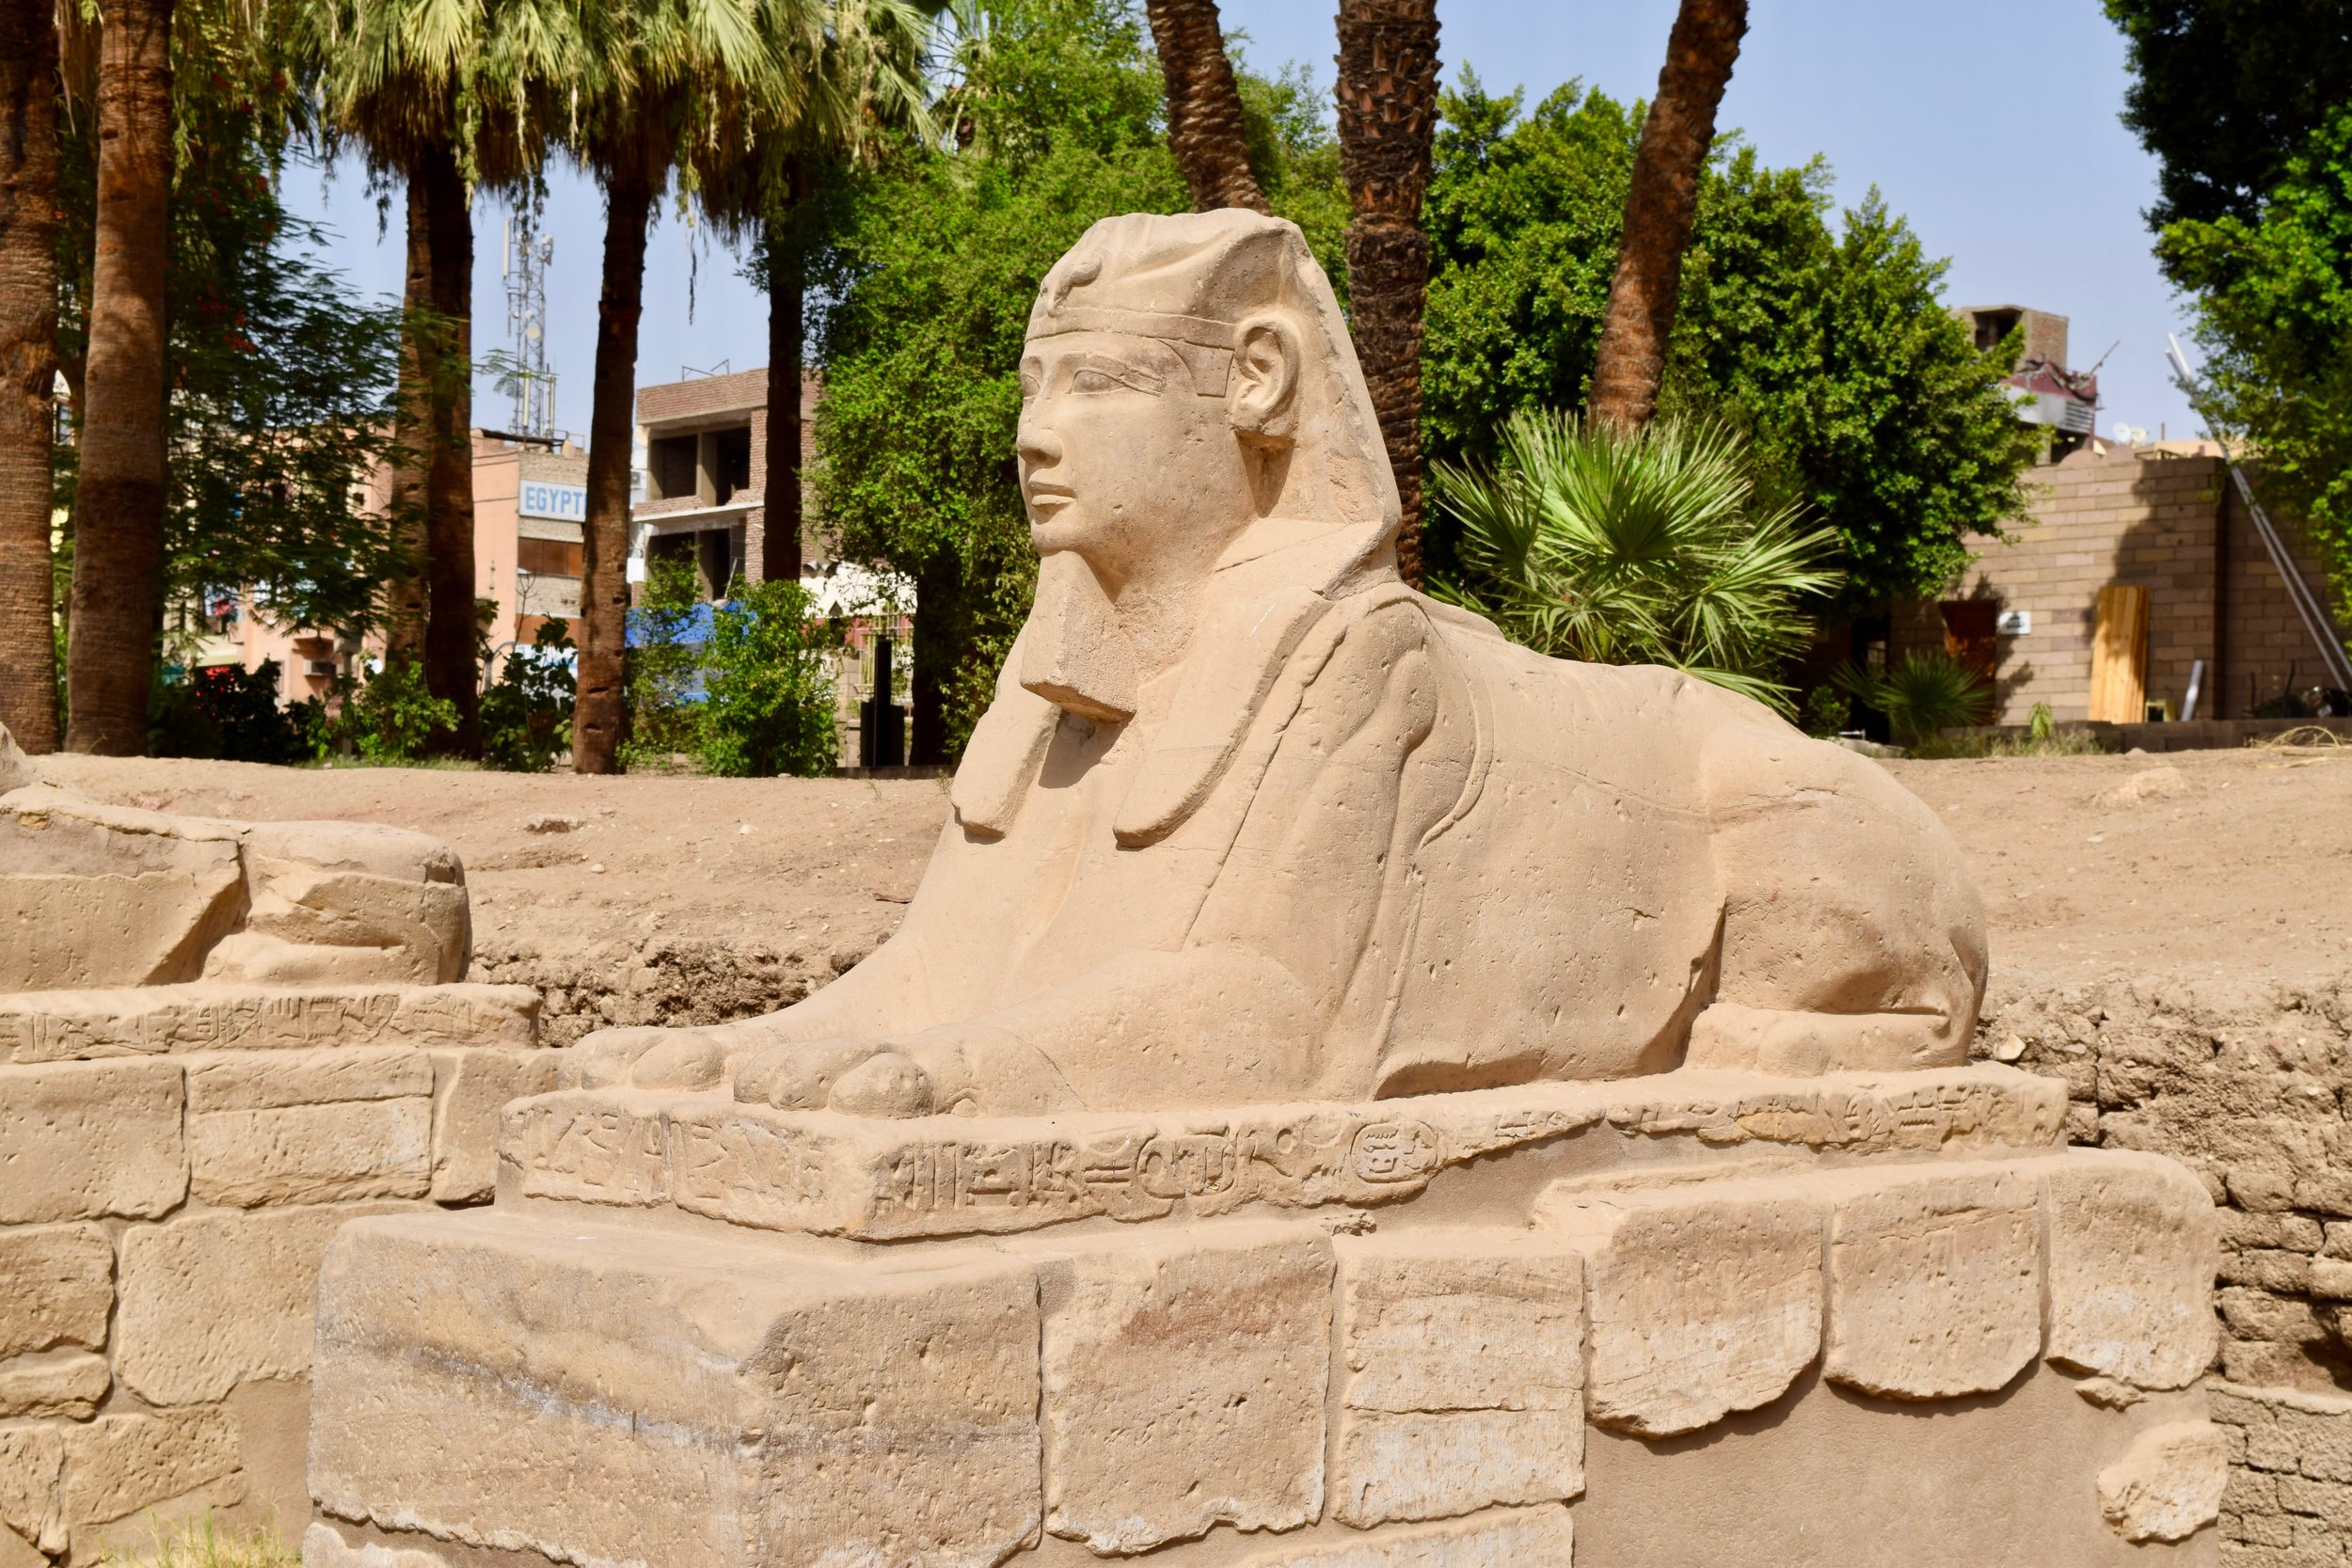 Sphinx of the king's head and lion's body